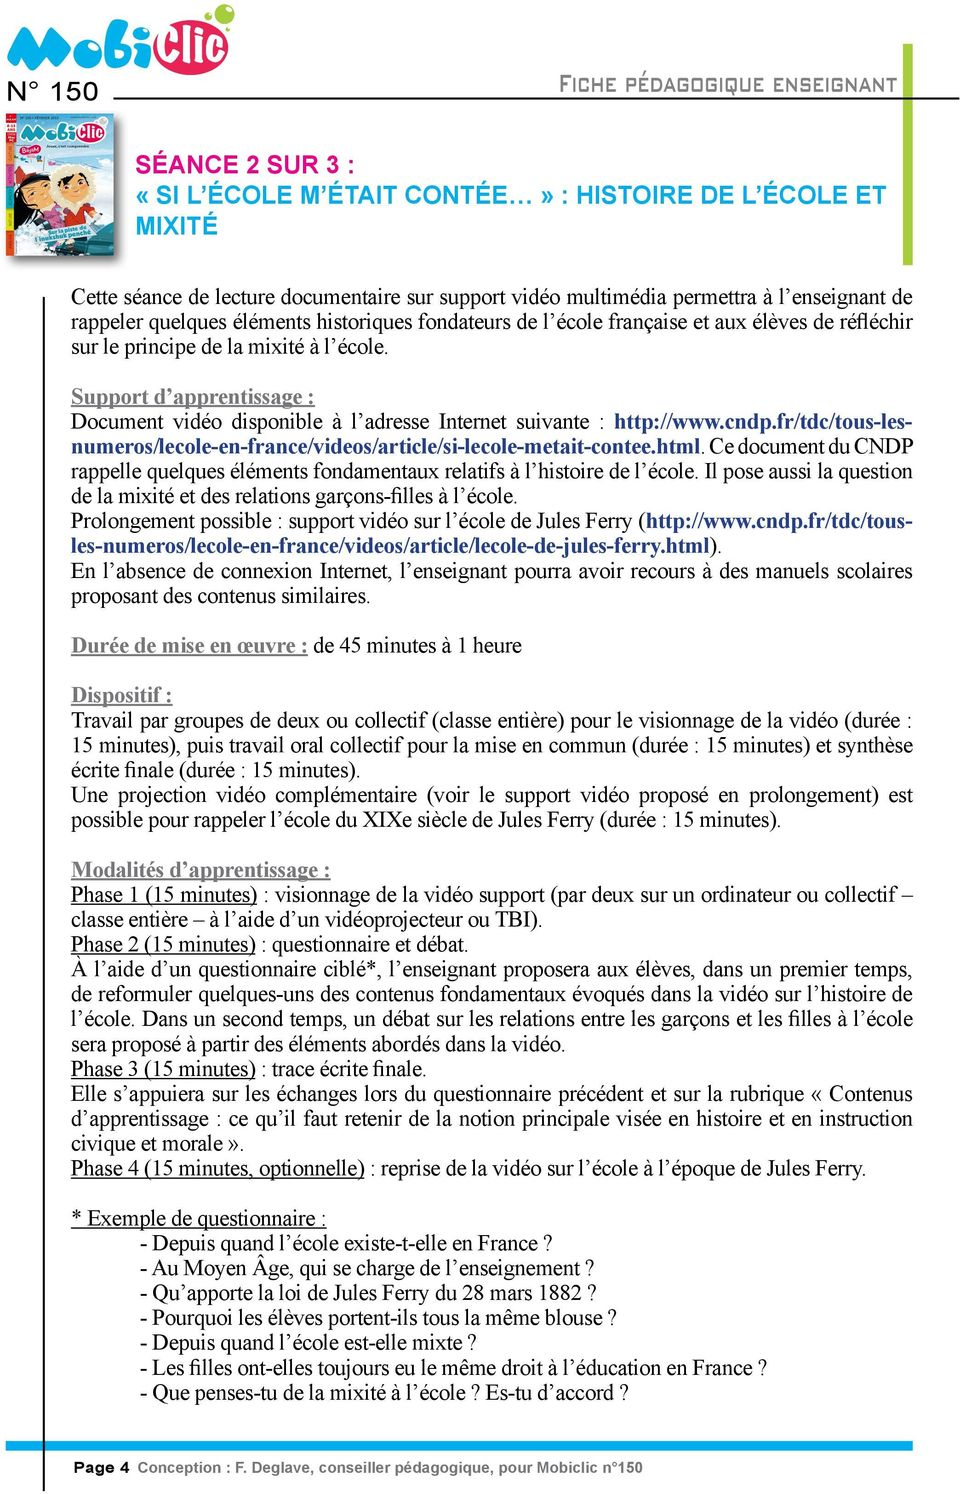 Support d apprentissage : Document vidéo disponible à l adresse Internet suivante : http://www.cndp.fr/tdc/tous-lesnumeros/lecole-en-france/videos/article/si-lecole-metait-contee.html.